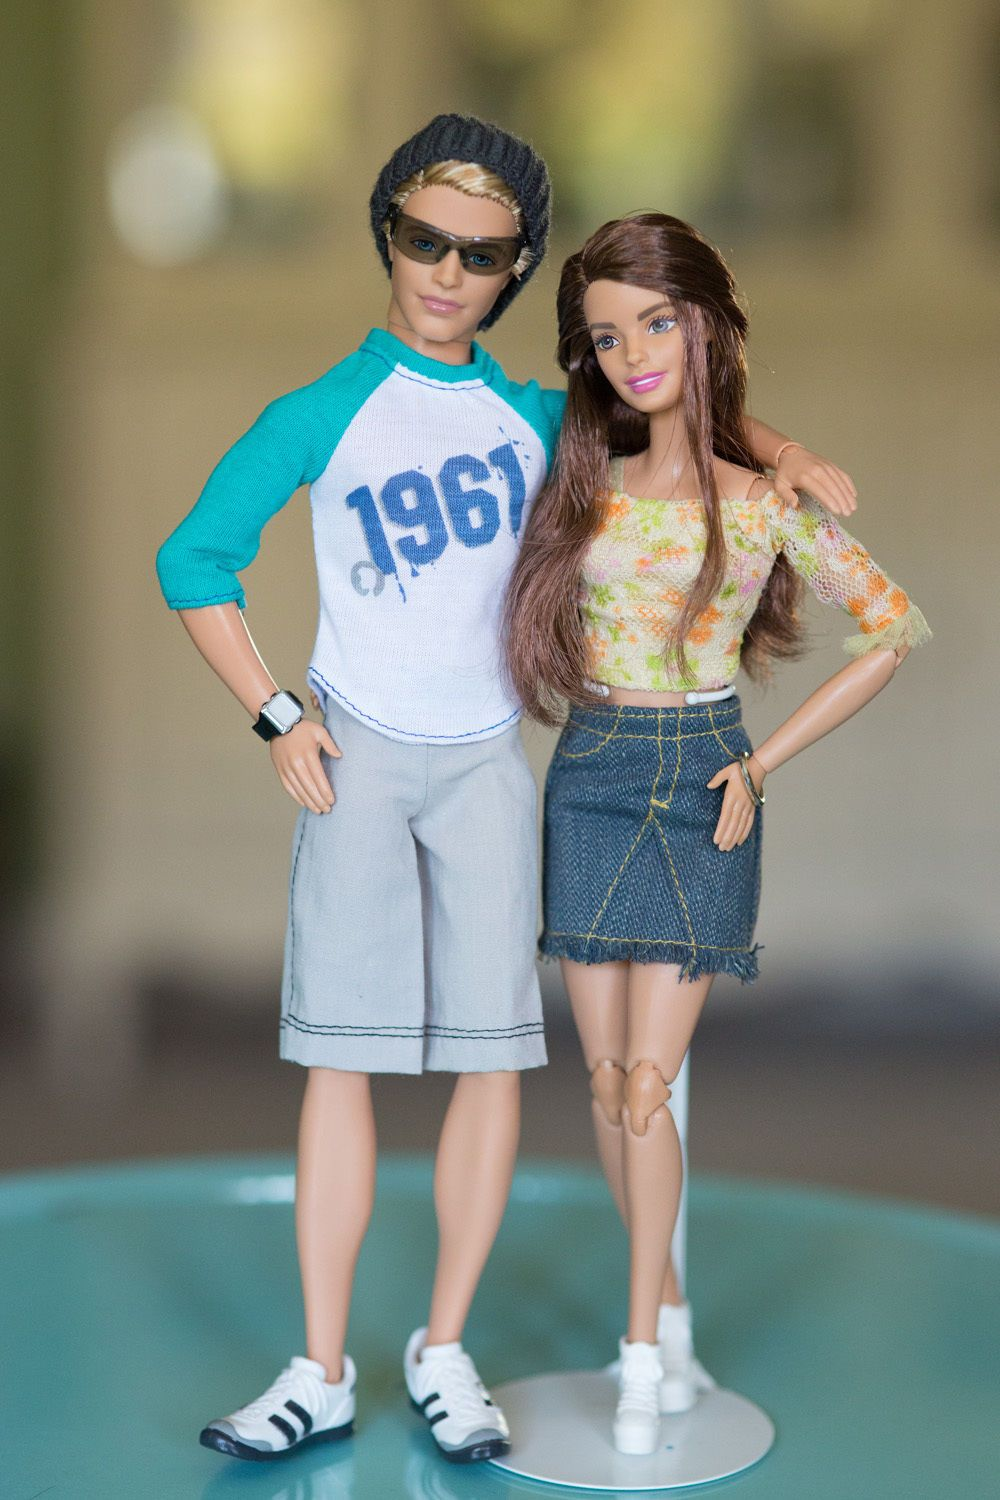 These dolls make such a cute couple! The Ken doll is a hard to